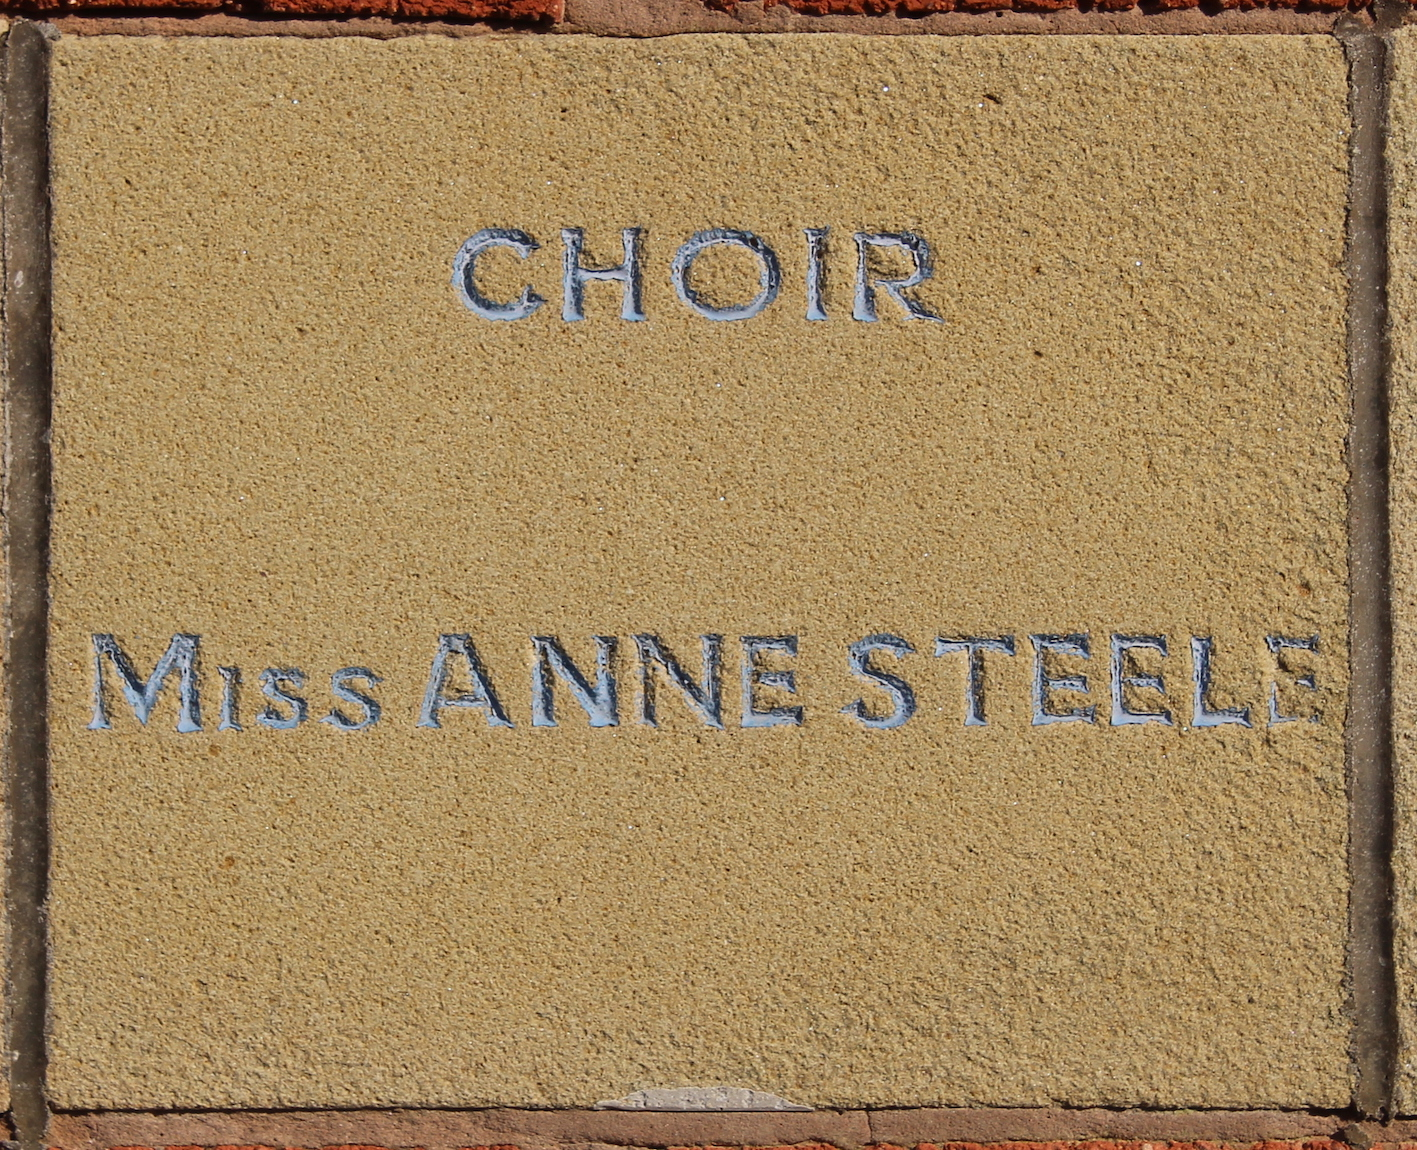 Memorial stone laid by Miss Annie Steele